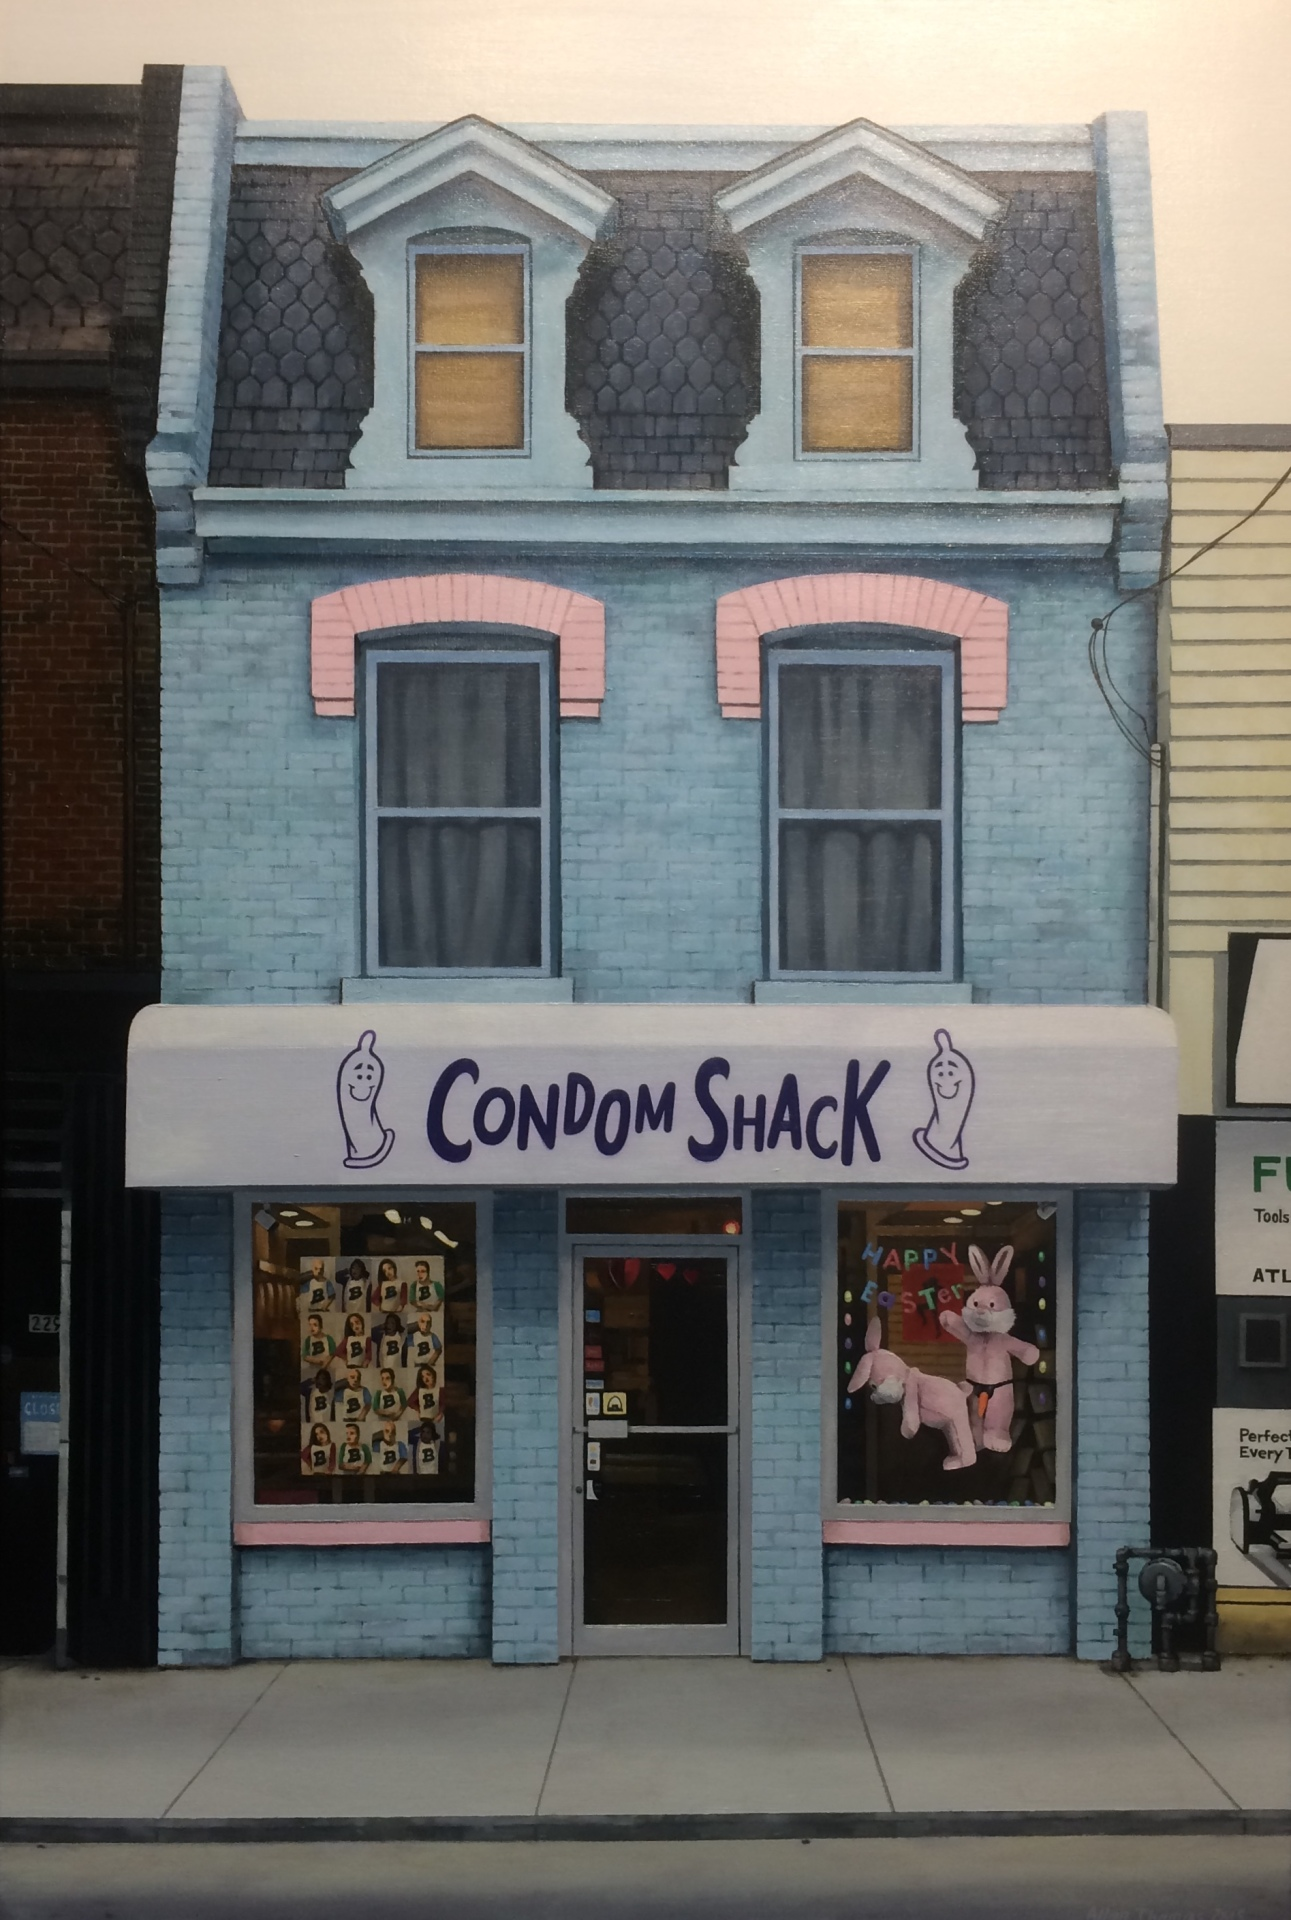 CONDOM SHACK - 36X24 - OIL ON CANVAS - 2018